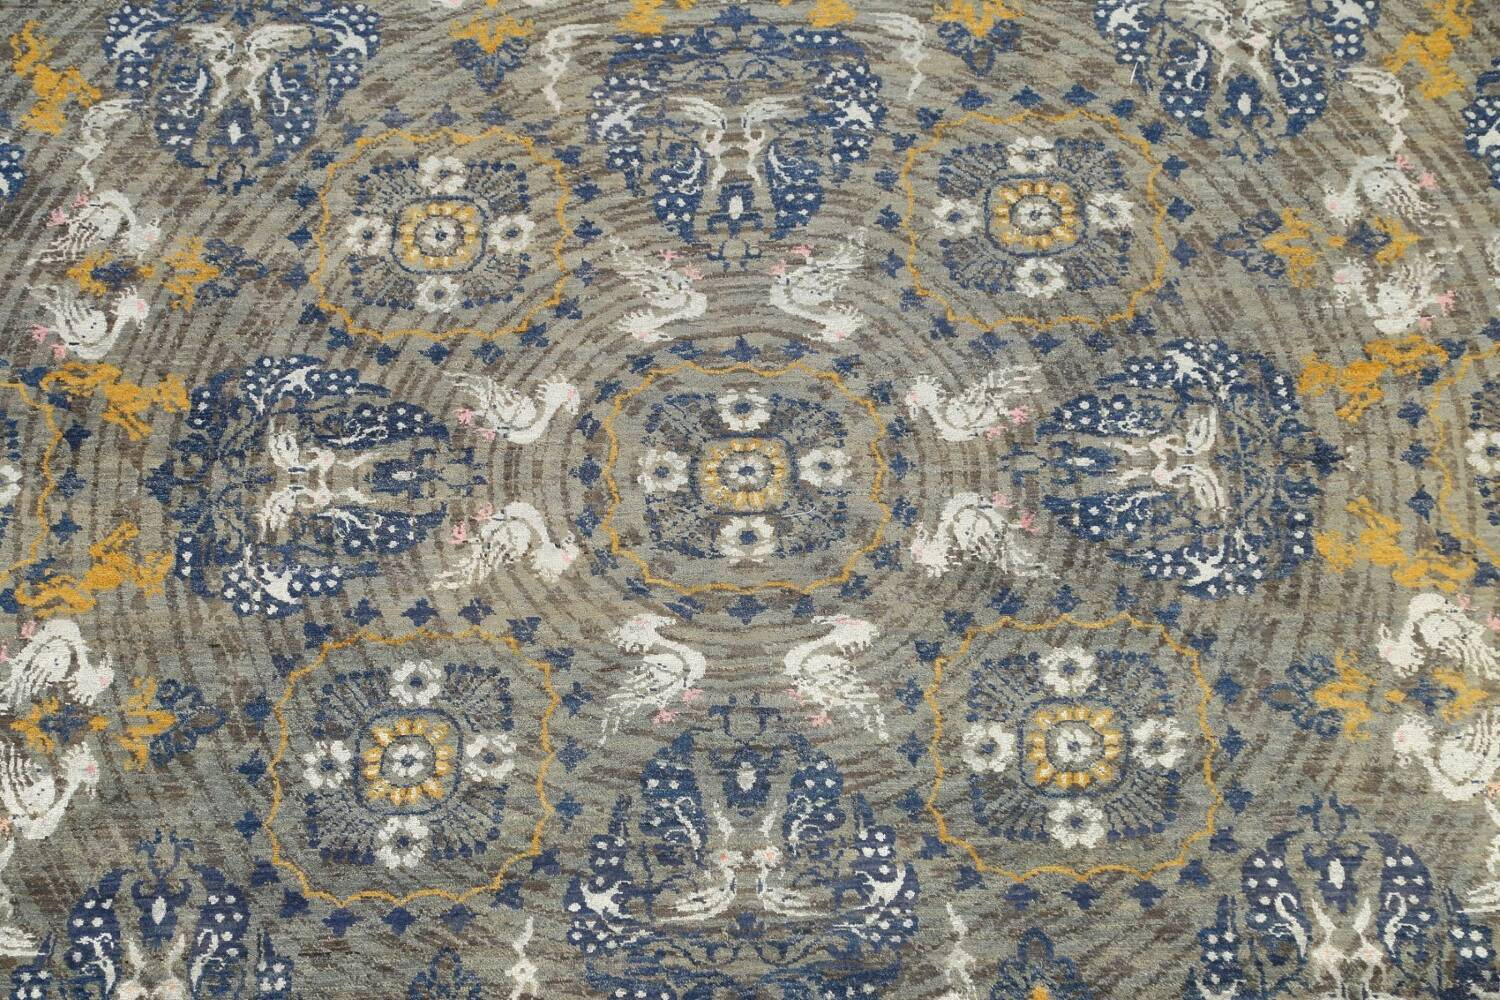 Vegetable Dye Animal Pictorial Abstract Oriental Area Rug 8x11 image 4